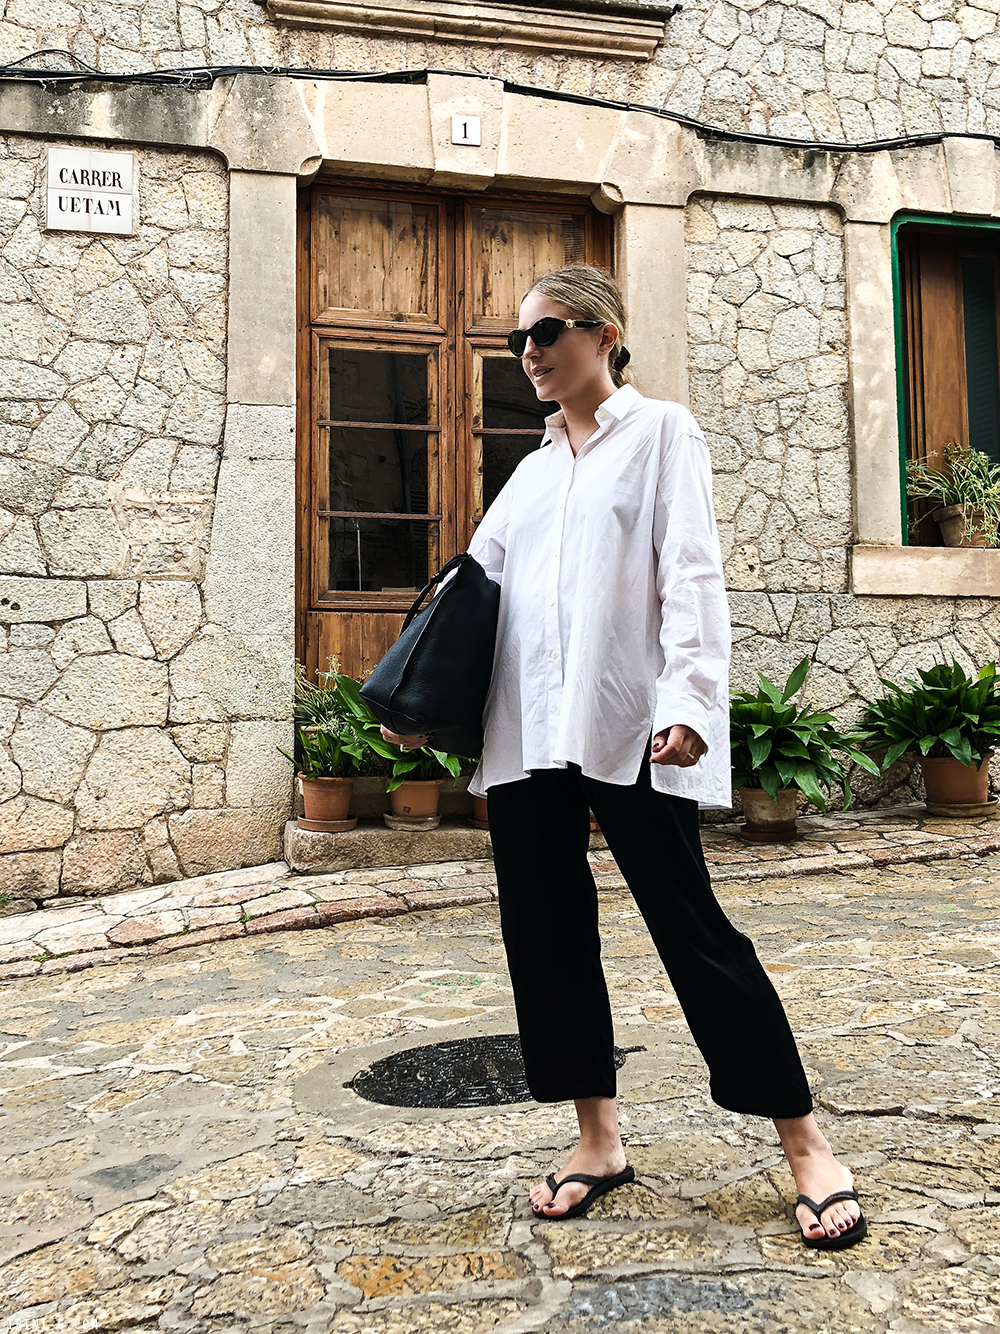 How to Wear Flip-Flop Sandals for Fall — Outfit with oversized white button-down shirt, cropped black pants, and black flip-flops